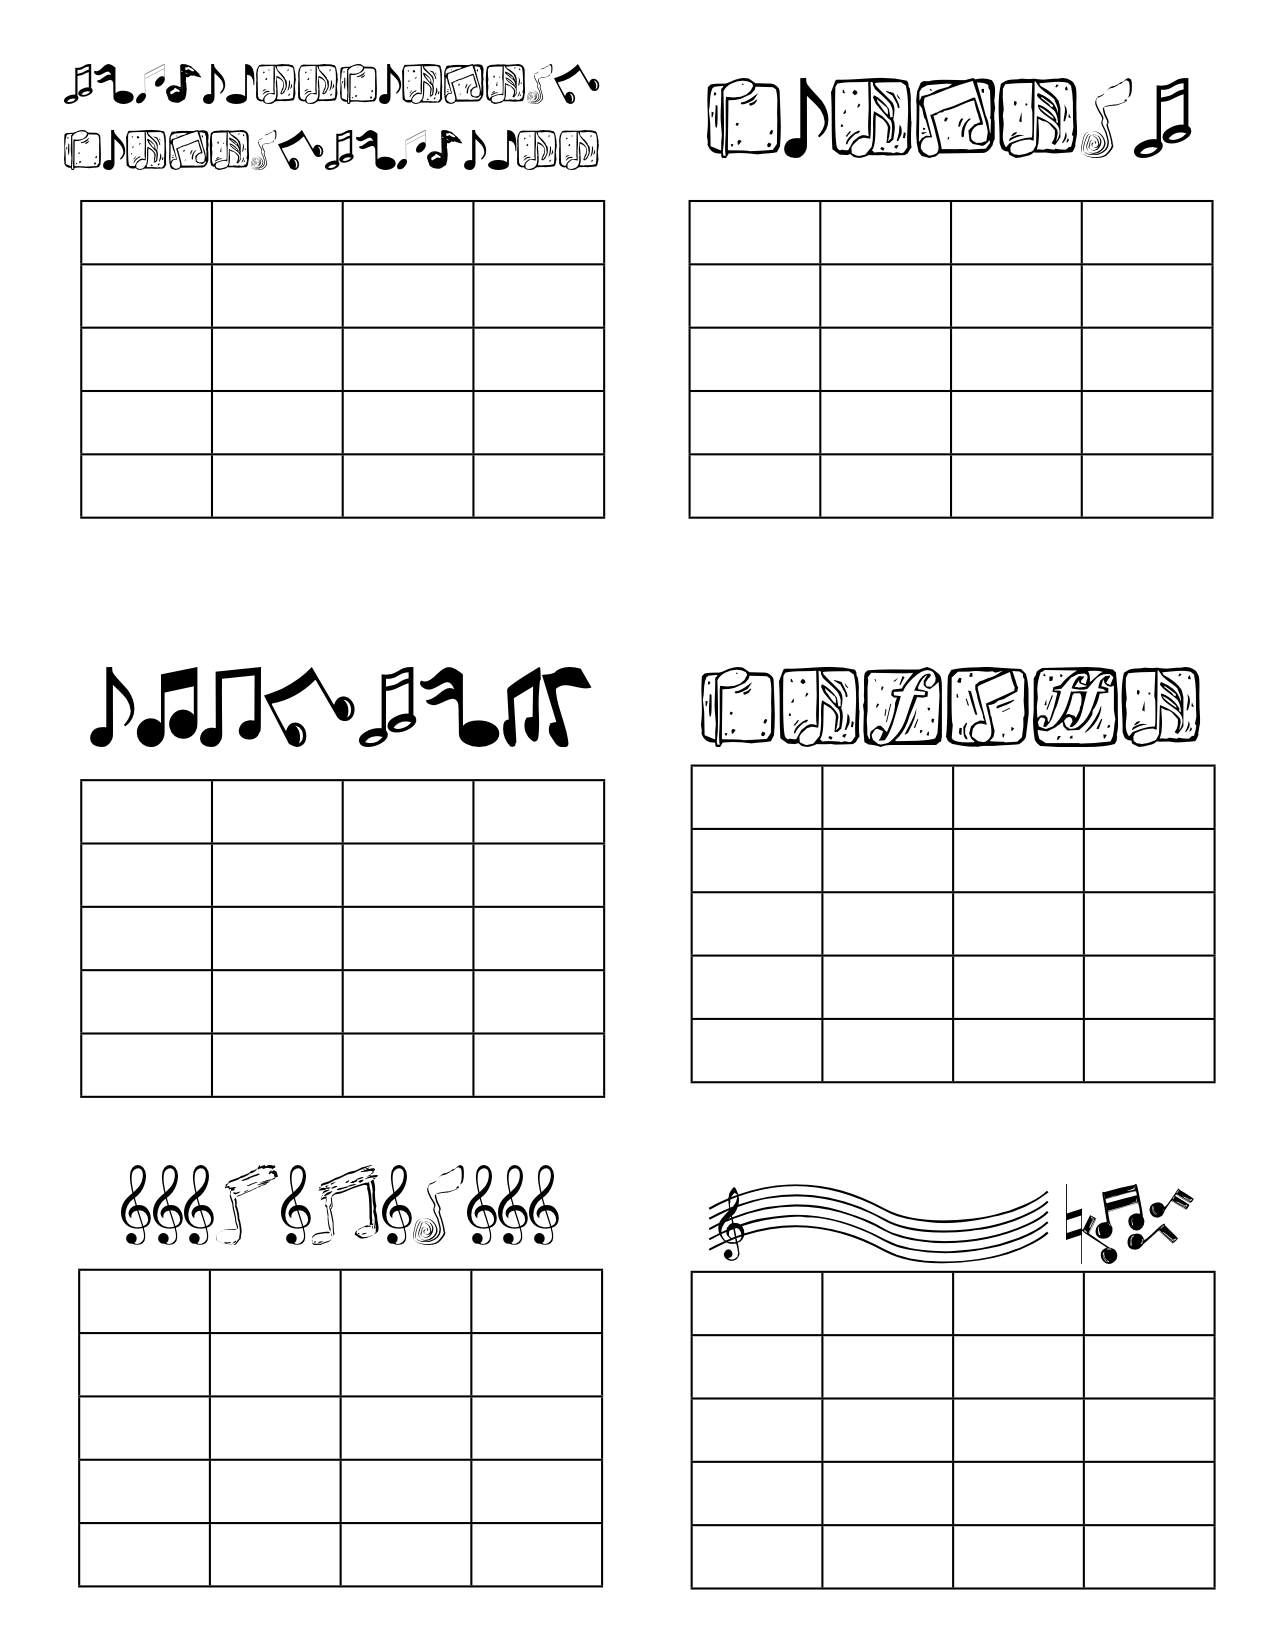 Fun Violin Practice Ideas Music Practice Charts Are